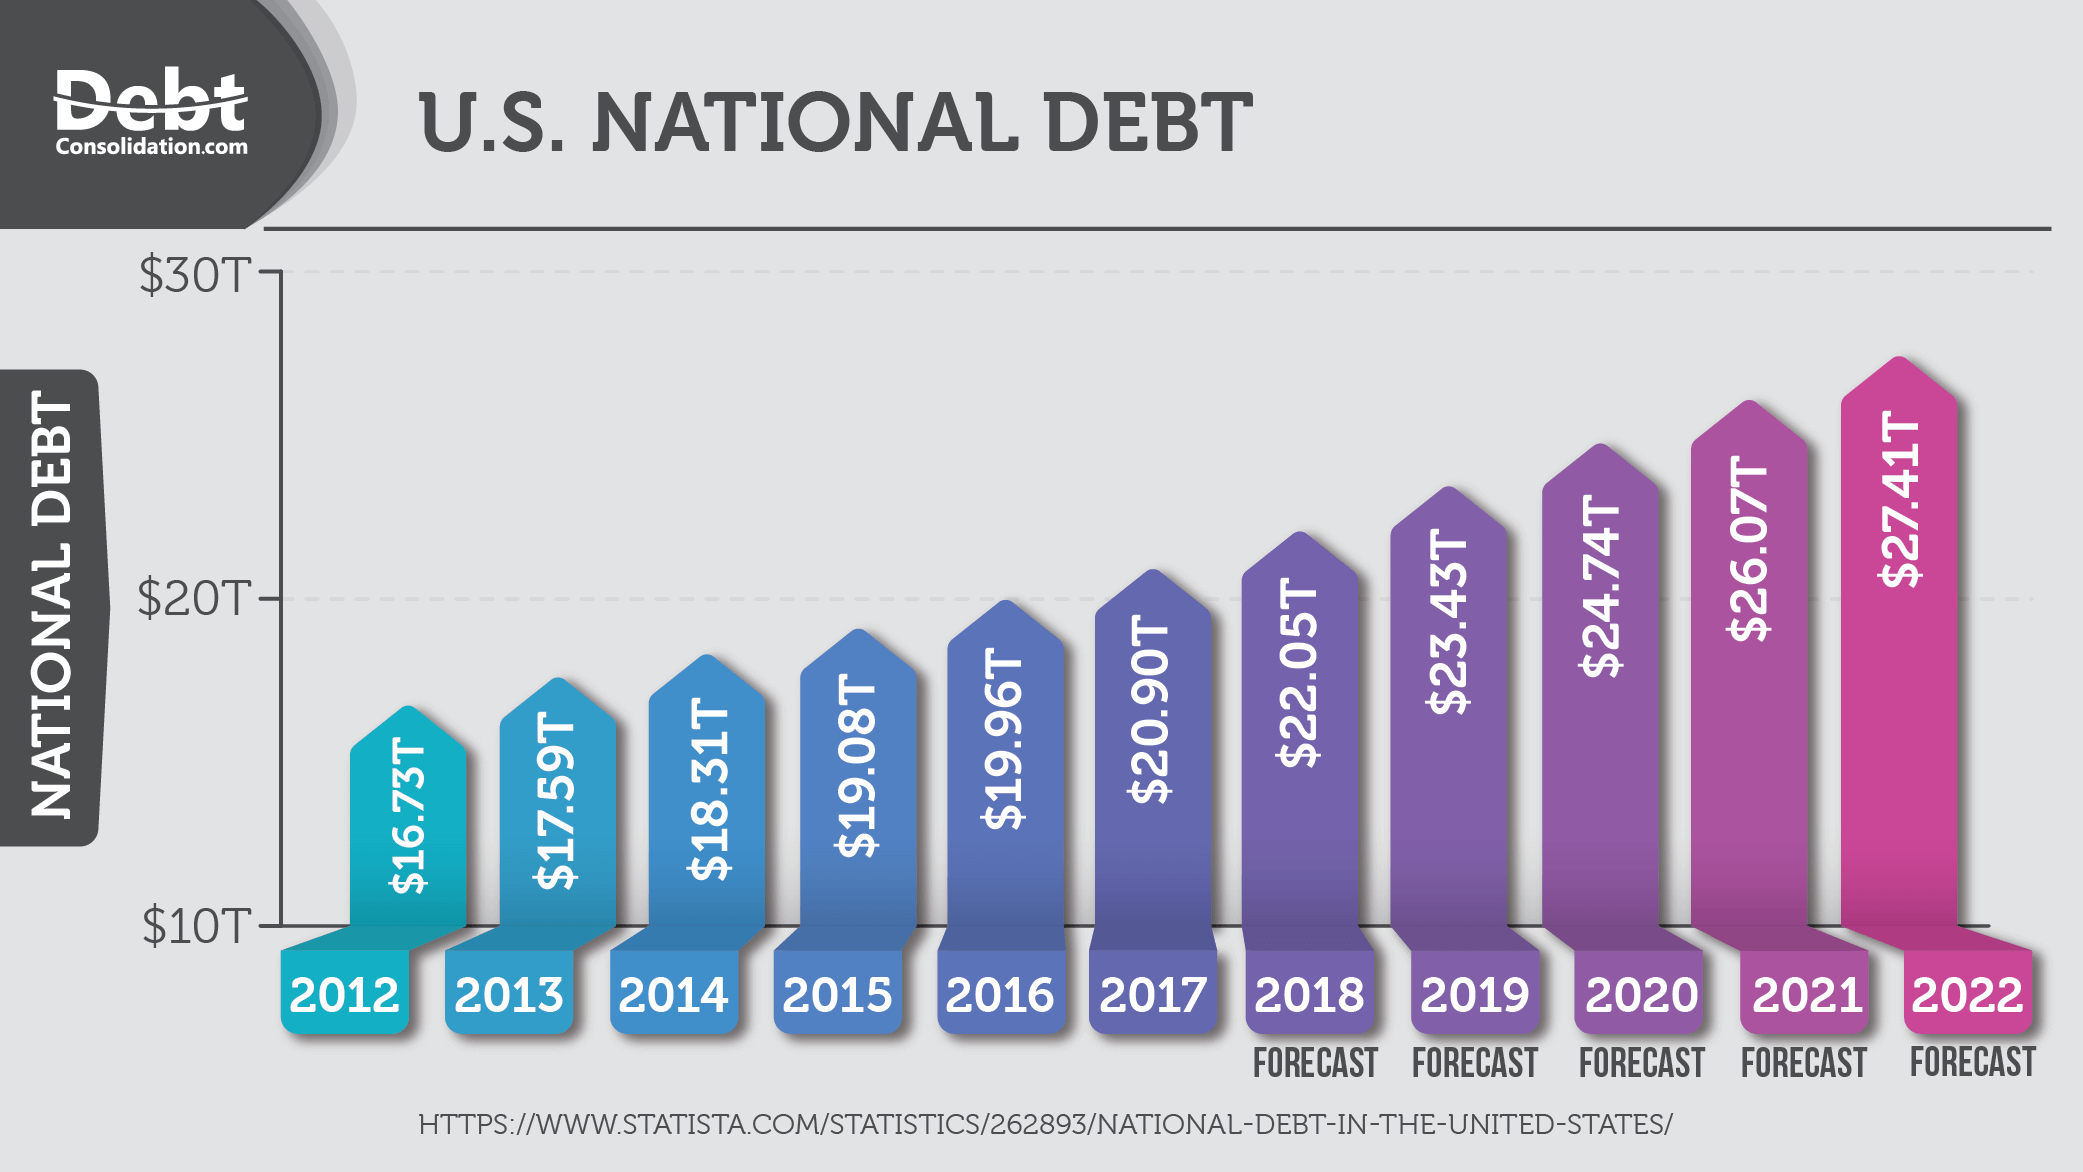 U.S. National Debt from 2012-2022